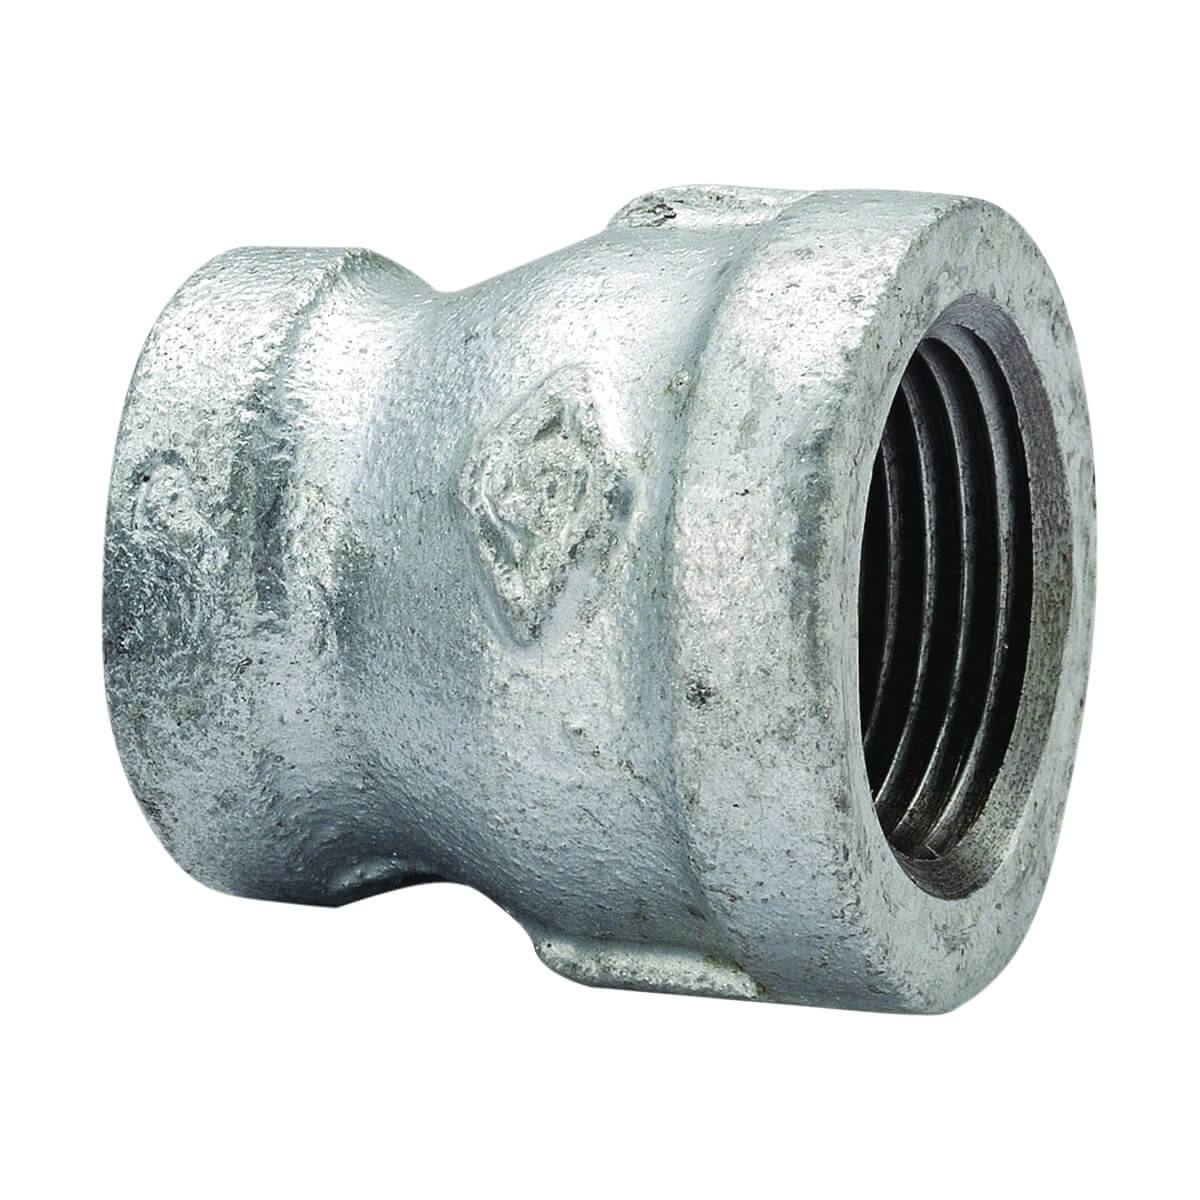 Galvanized Coupling Reducer - 3/8-in x 1/8-in